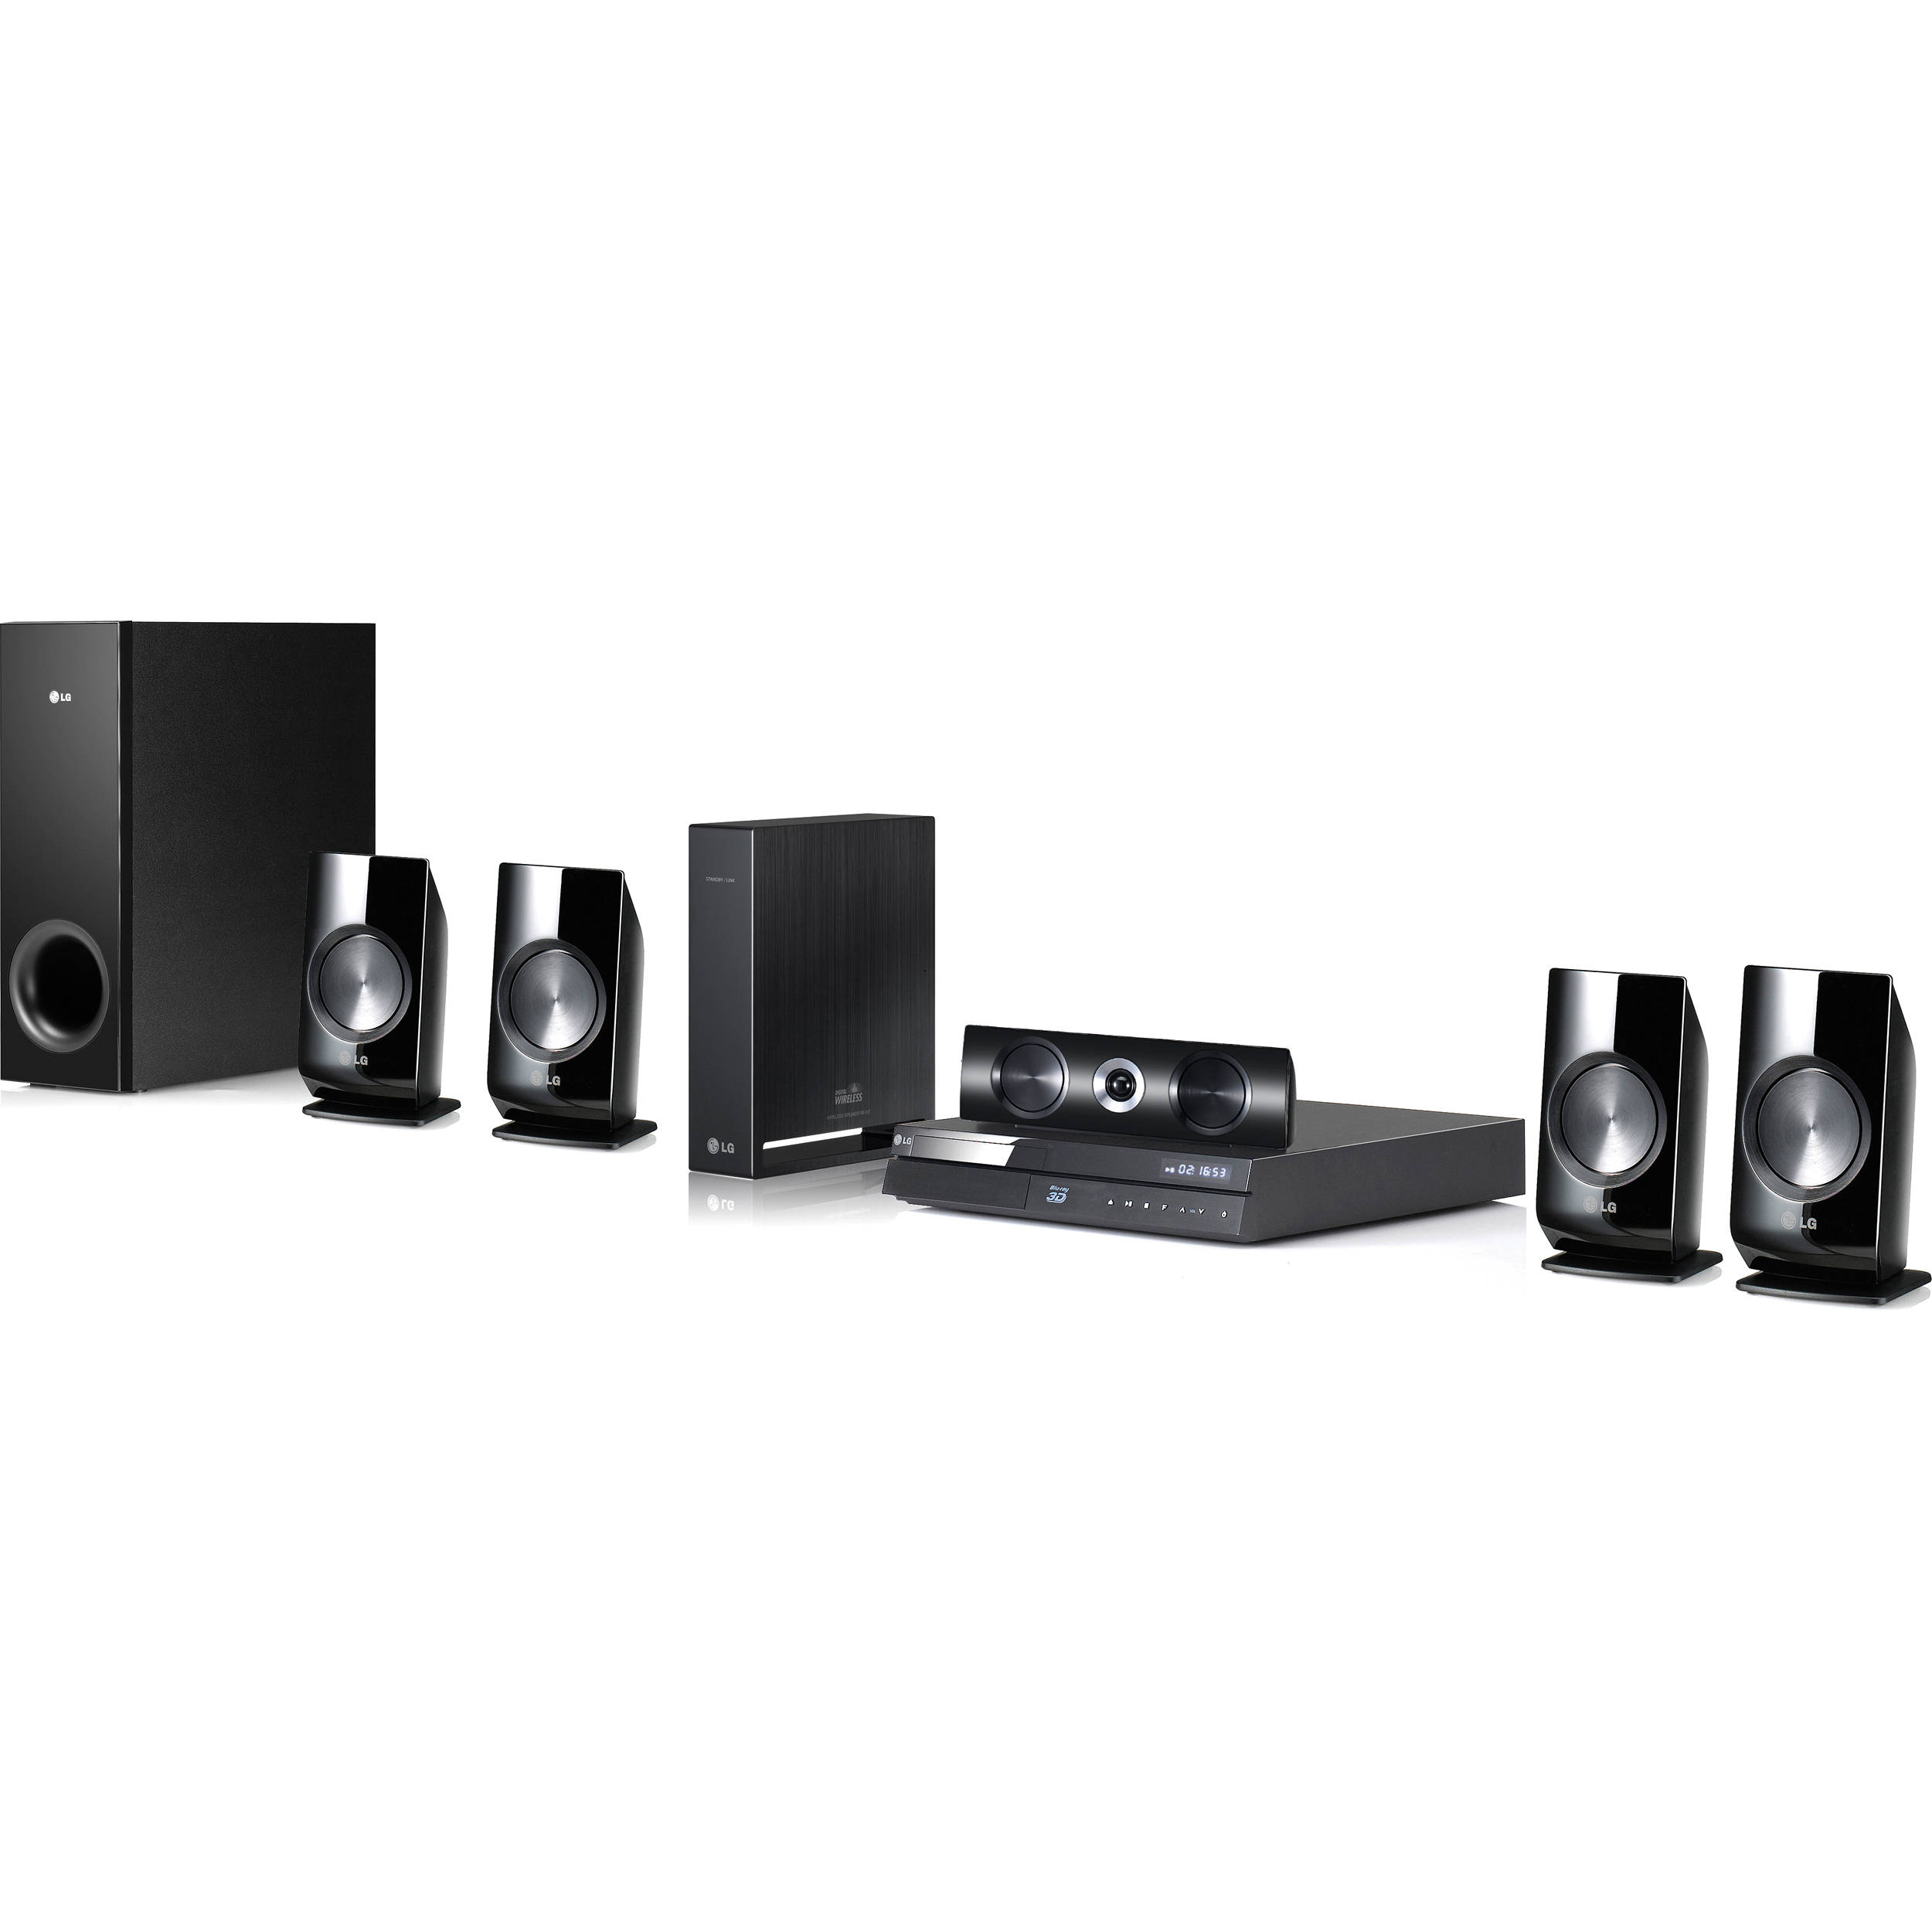 lg bh6820sw 3d blu ray home theater system bh6820sw b h photo rh bhphotovideo com LG Phone Manuals User Guides LG Phone Manuals User Guides